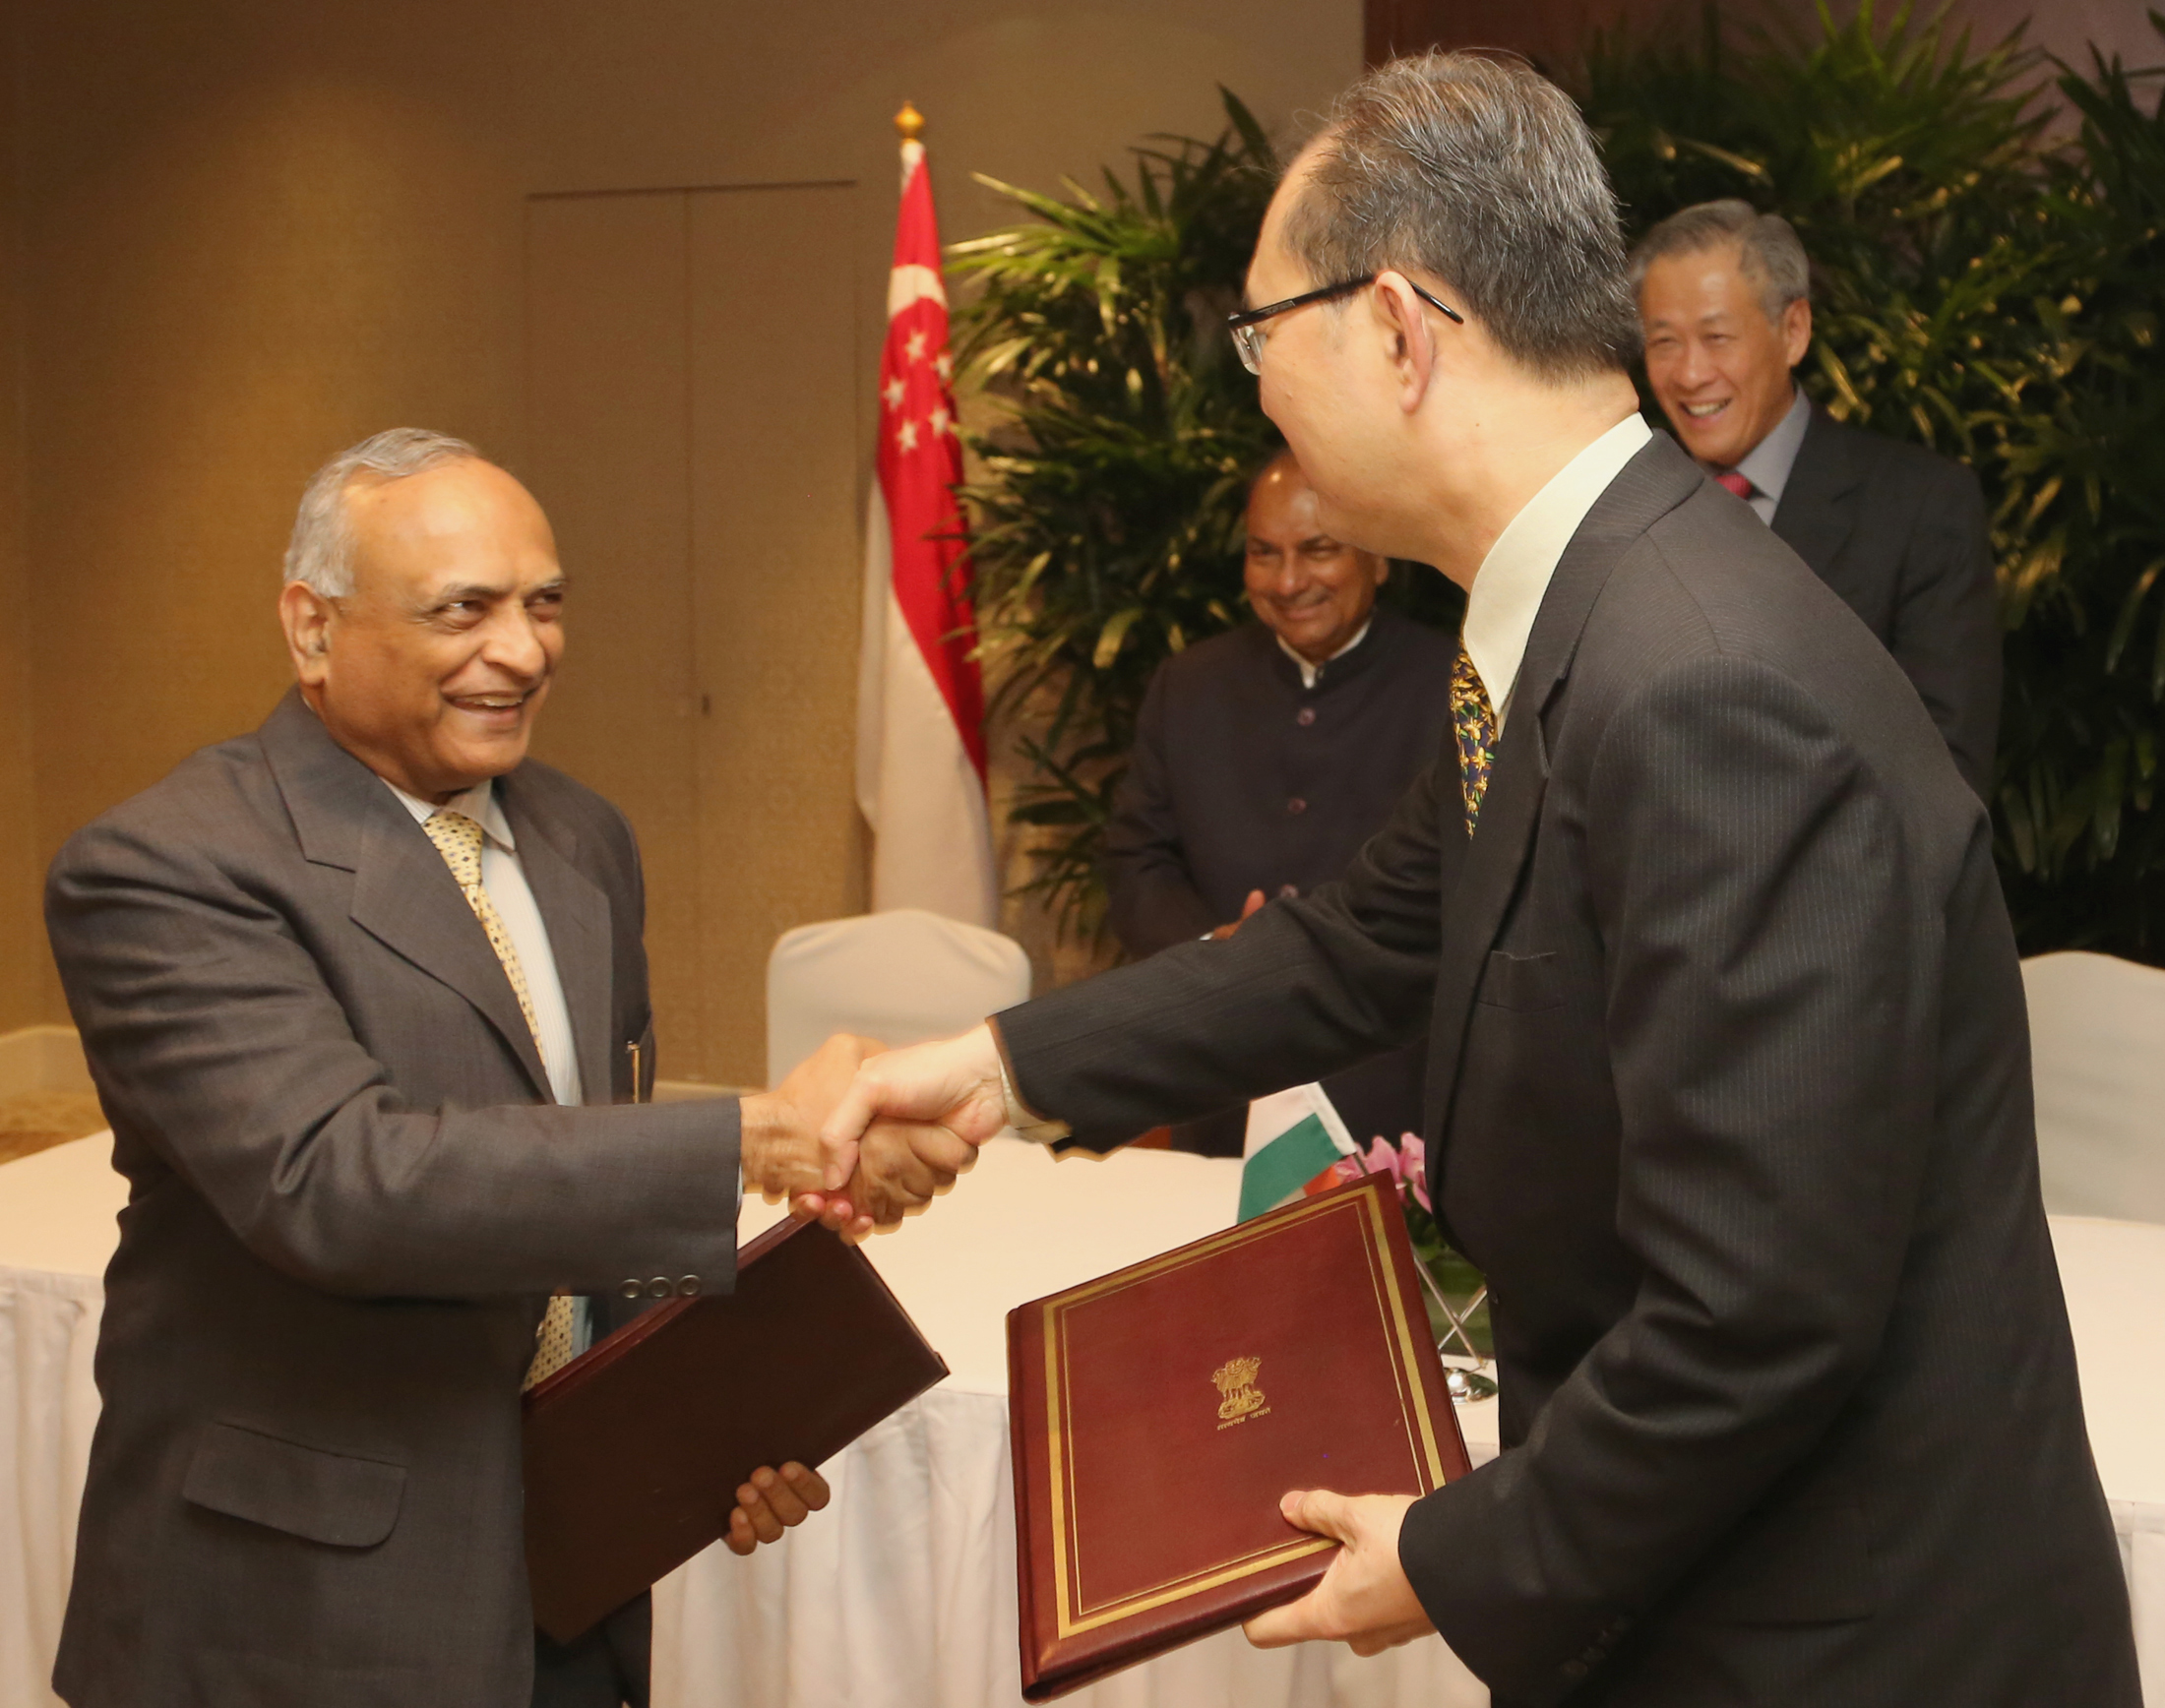 The Indian Defence Secretary, Radha Krishna Mathur and Singaporean Permanent Secretary of Defence, Chiang Chie Foo exchanging the signed documents of an agreement to extend the use of training and exercise facilities in India by the Singapore Army for a further period of five years from August this year, in the presence of the Defence Minister, A. K. Antony and his Singaporean counterpart Dr. Ng Eng Hen, in Singapore on June 03, 2013.